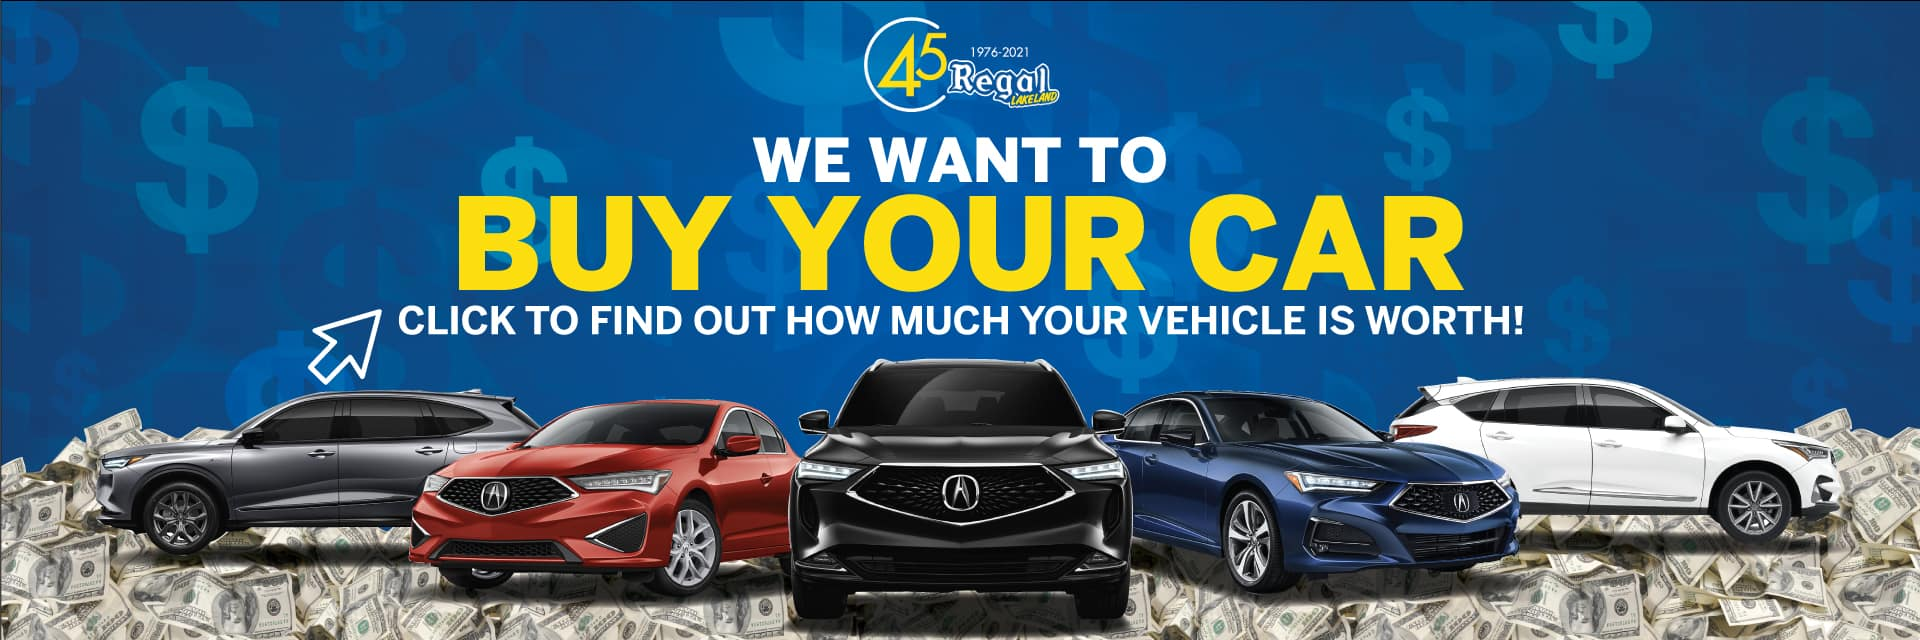 We Want Your Car KBB ICO